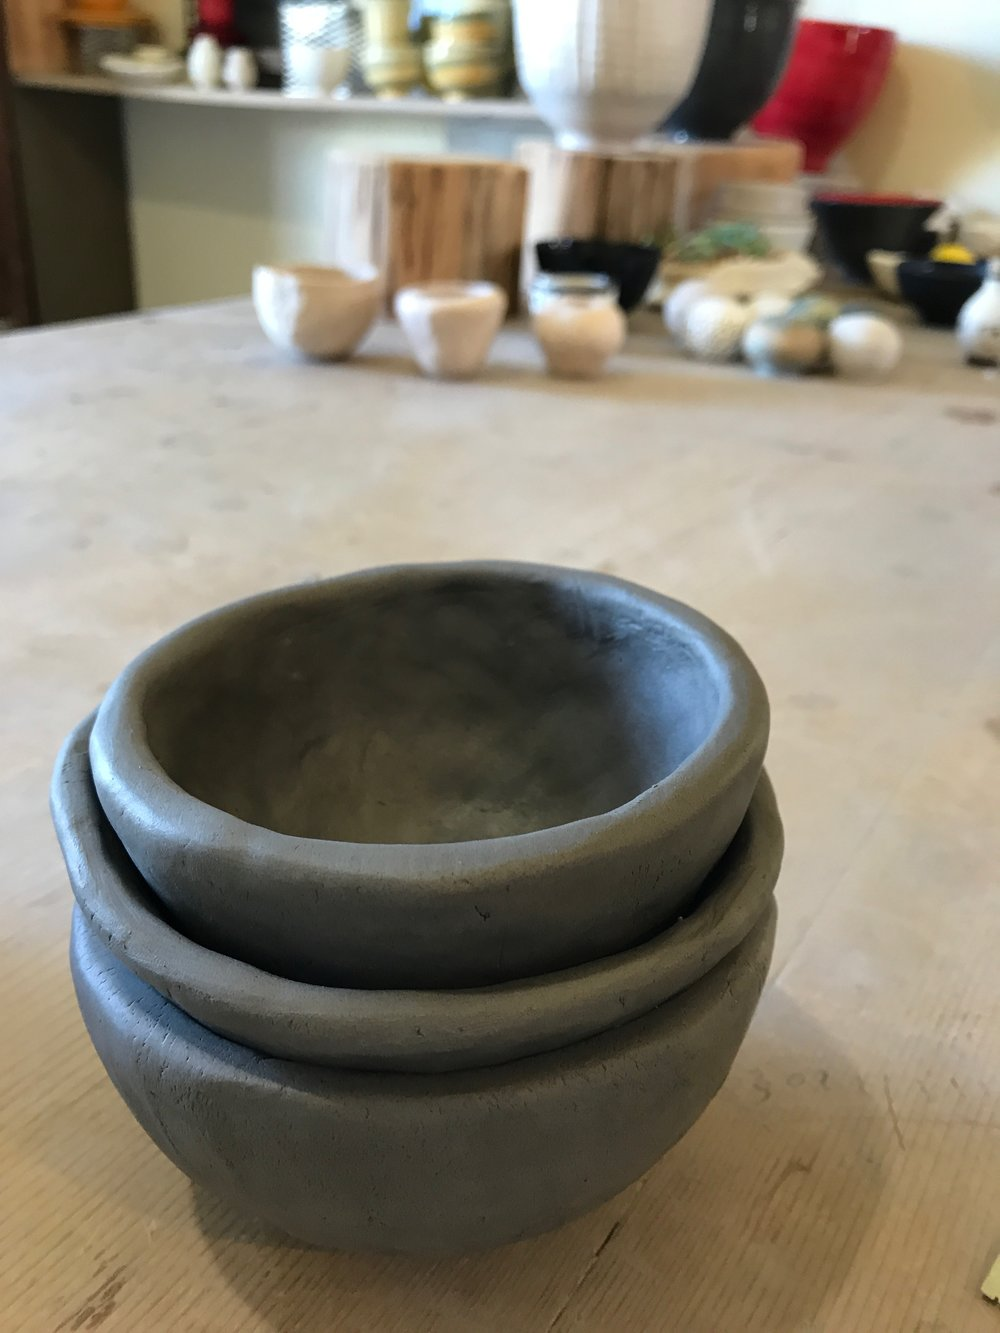 We started with hand-forming bowls - it was a small class - just two of us students plus our lovely teacher, Nicole.